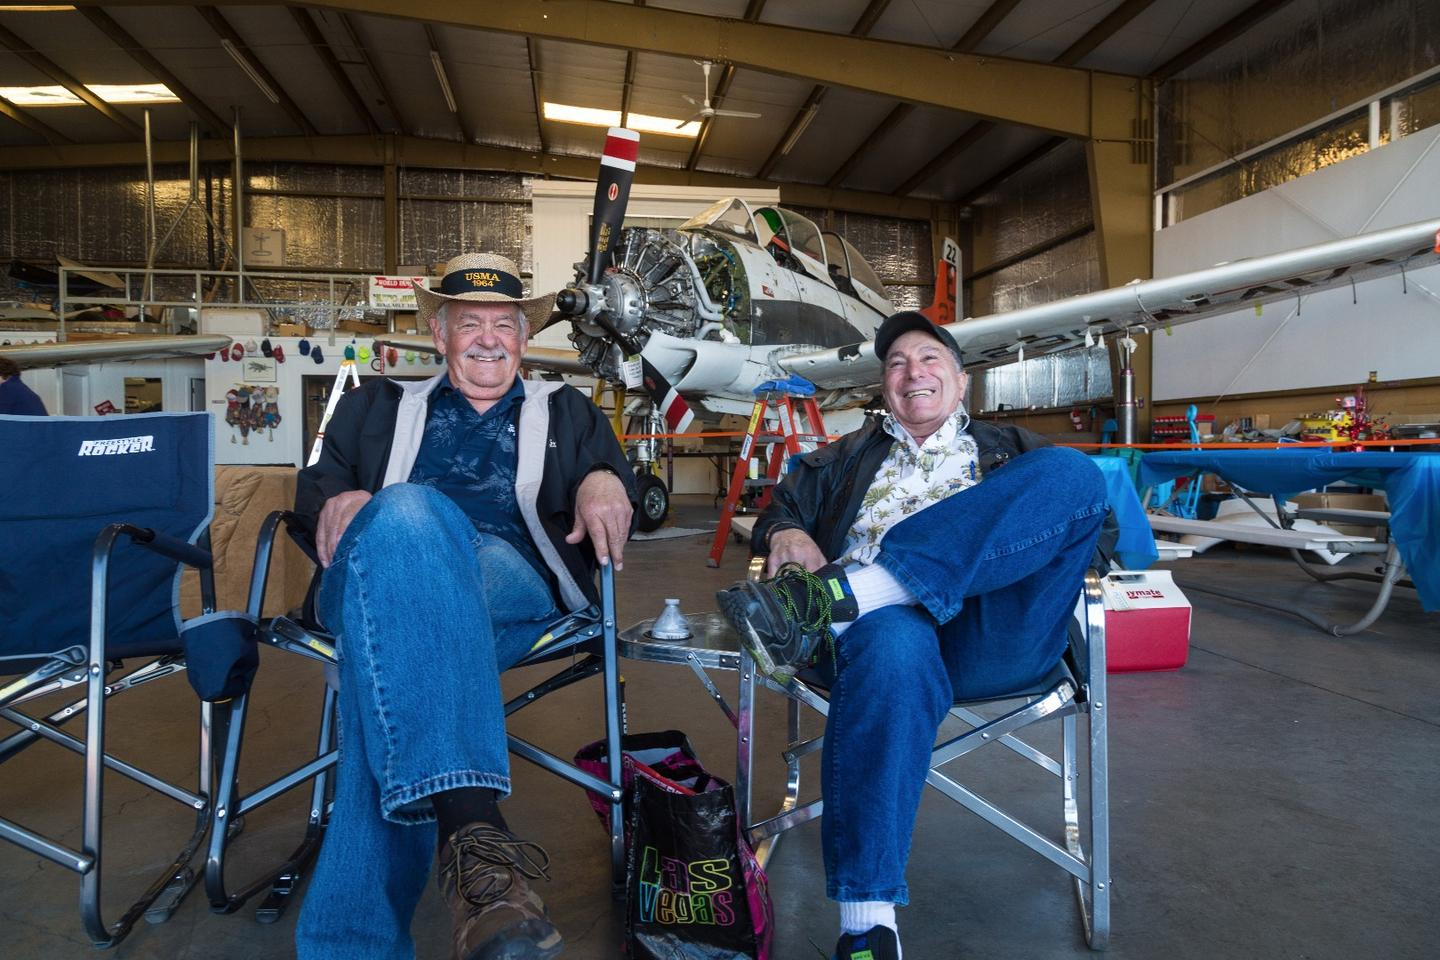 Les Salz (right) with his friend Gary, partners in Balls Out Aviation. They have a hangar here at Stead which they use all year round, it becomes the base for a party come Air Race time now that neither man competes.